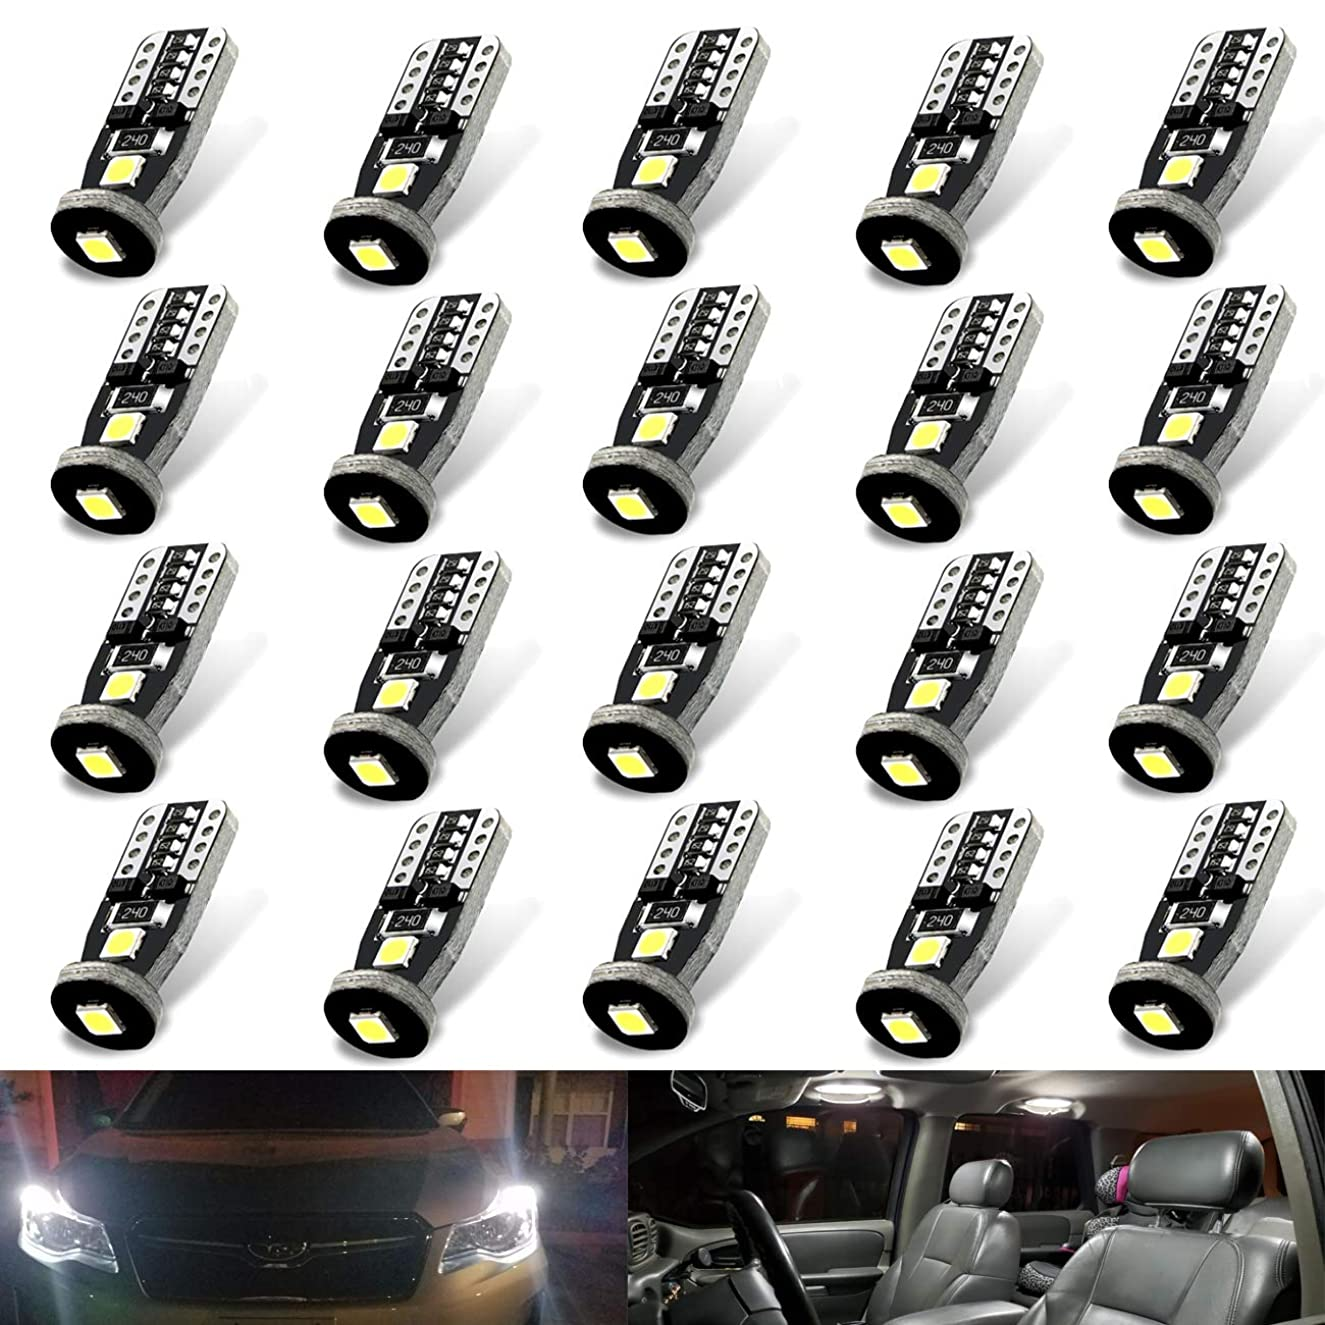 20/Pack 3030 Chipset LED Bulbs for Car Interior Dome Map Door Courtesy License Plate Lights Compact Wedge T10 168 194 2825 Xenon White Pack of 20